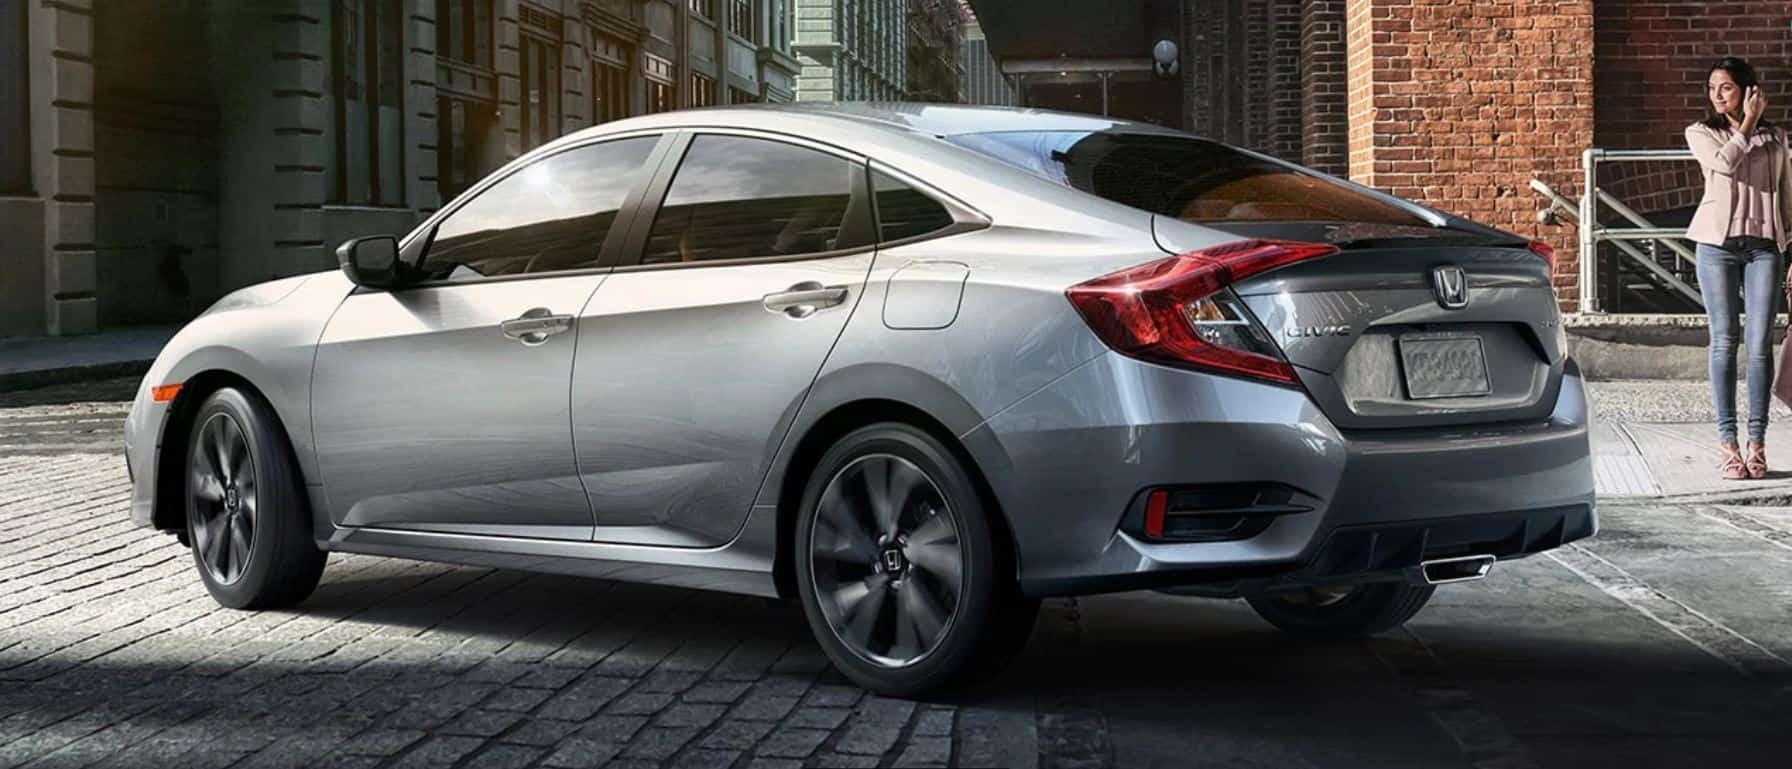 What's new with the 2020 Honda Civic near Aurora CO